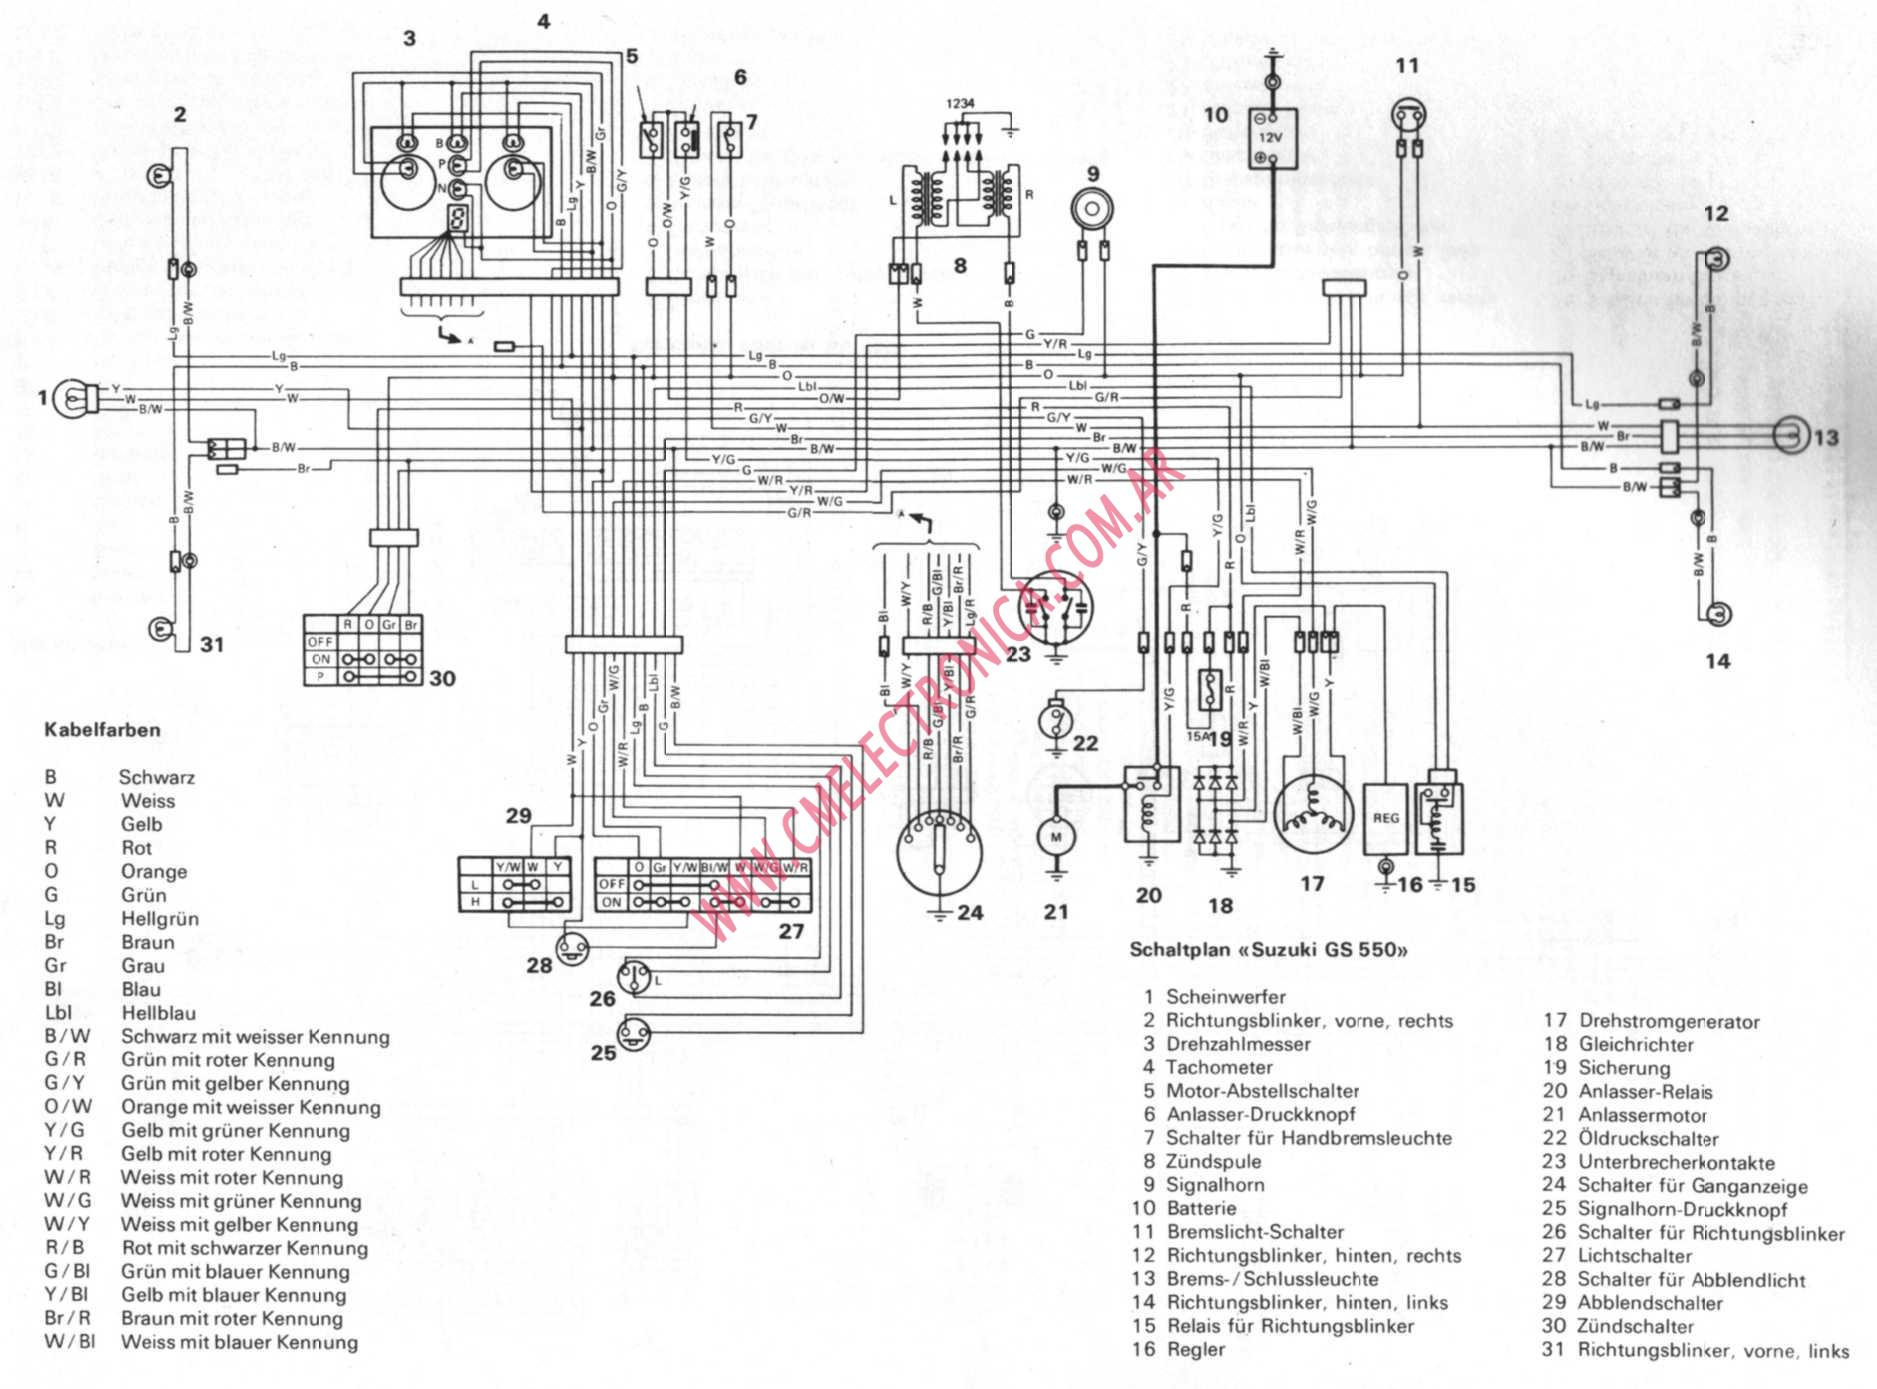 suzuki gs550 suzuki gs 550 wiring diagram suzuki boulevard wiring diagram  at reclaimingppi.co